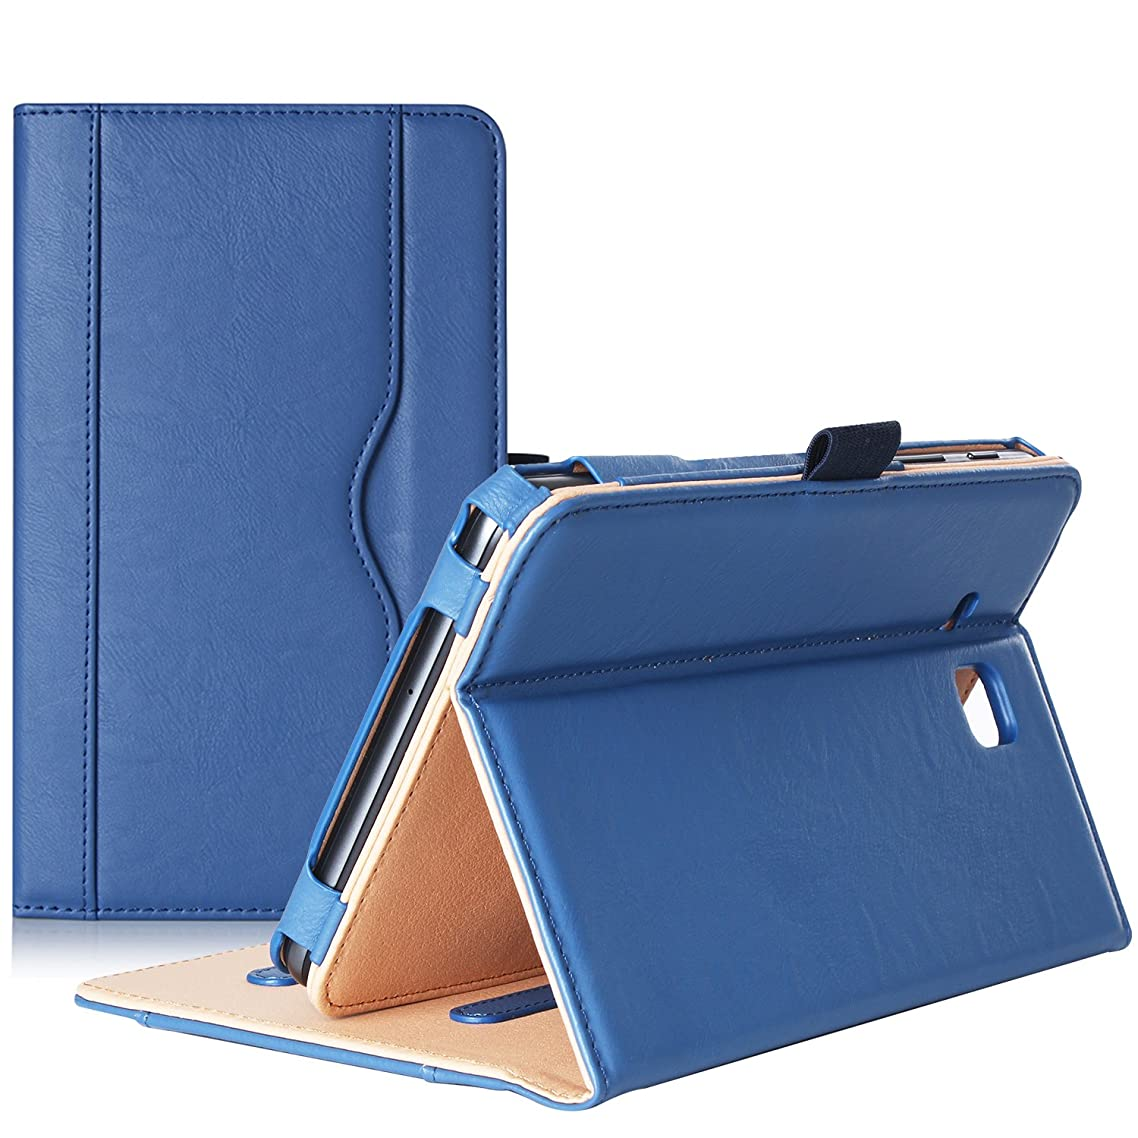 ProCase Galaxy Tab A 7.0 Case - Stand Folio Case Cover for Galaxy Tab A 7.0 SM-T280 SM-T285 Tablet, with Multiple Viewing Angles, Document Card Pocket (Navy Blue)